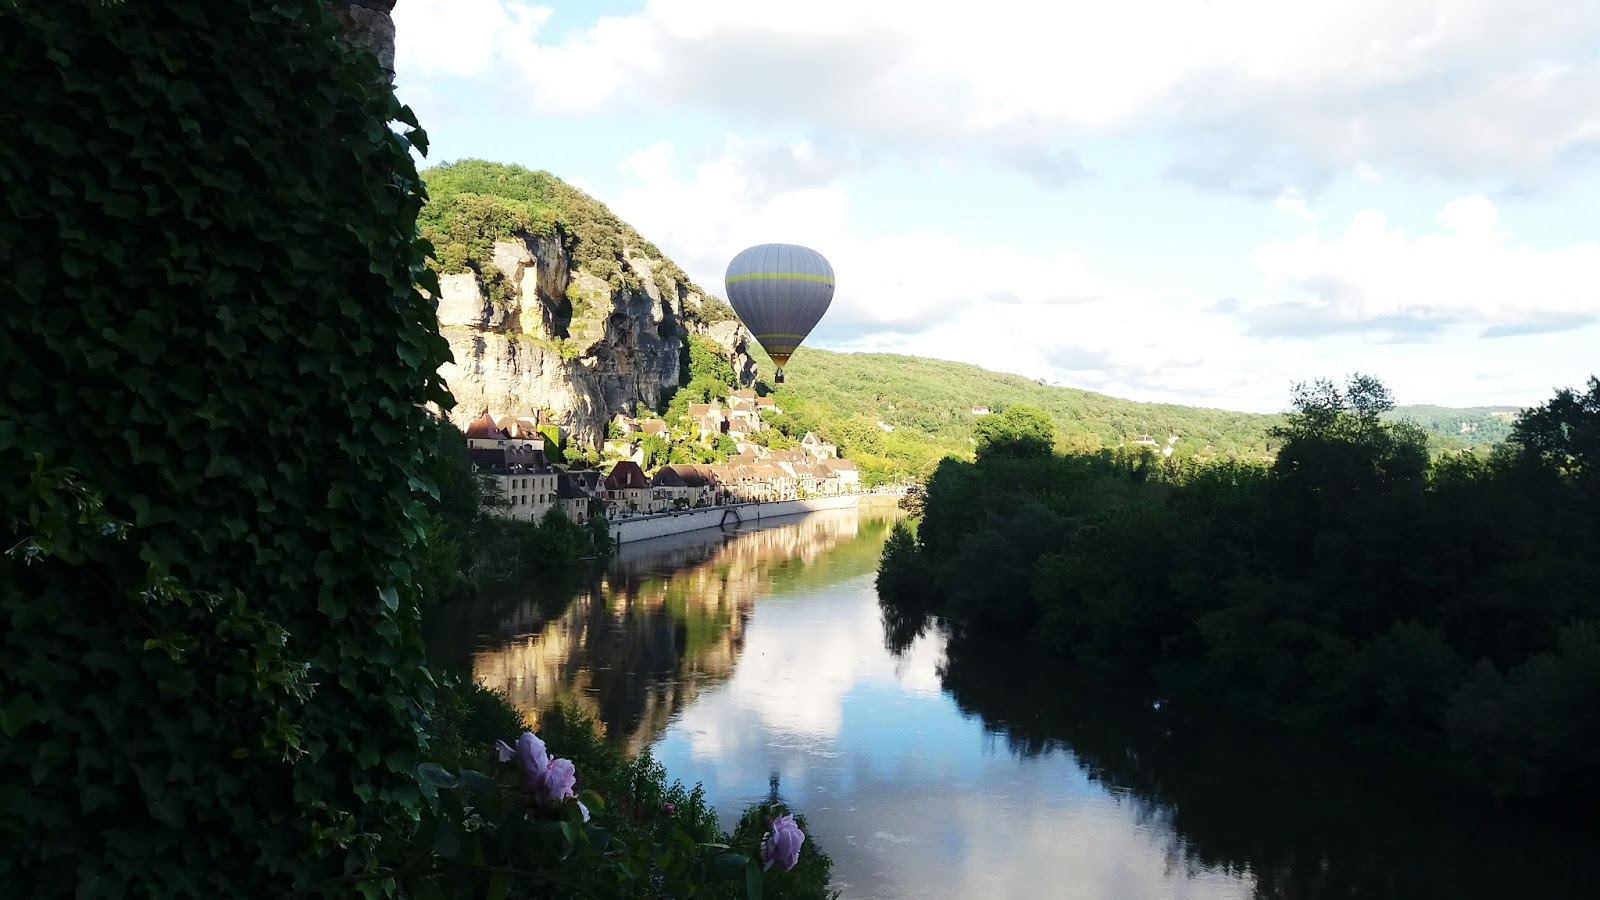 Hot air balloon landing on the Dordogne, La Roque Gageac